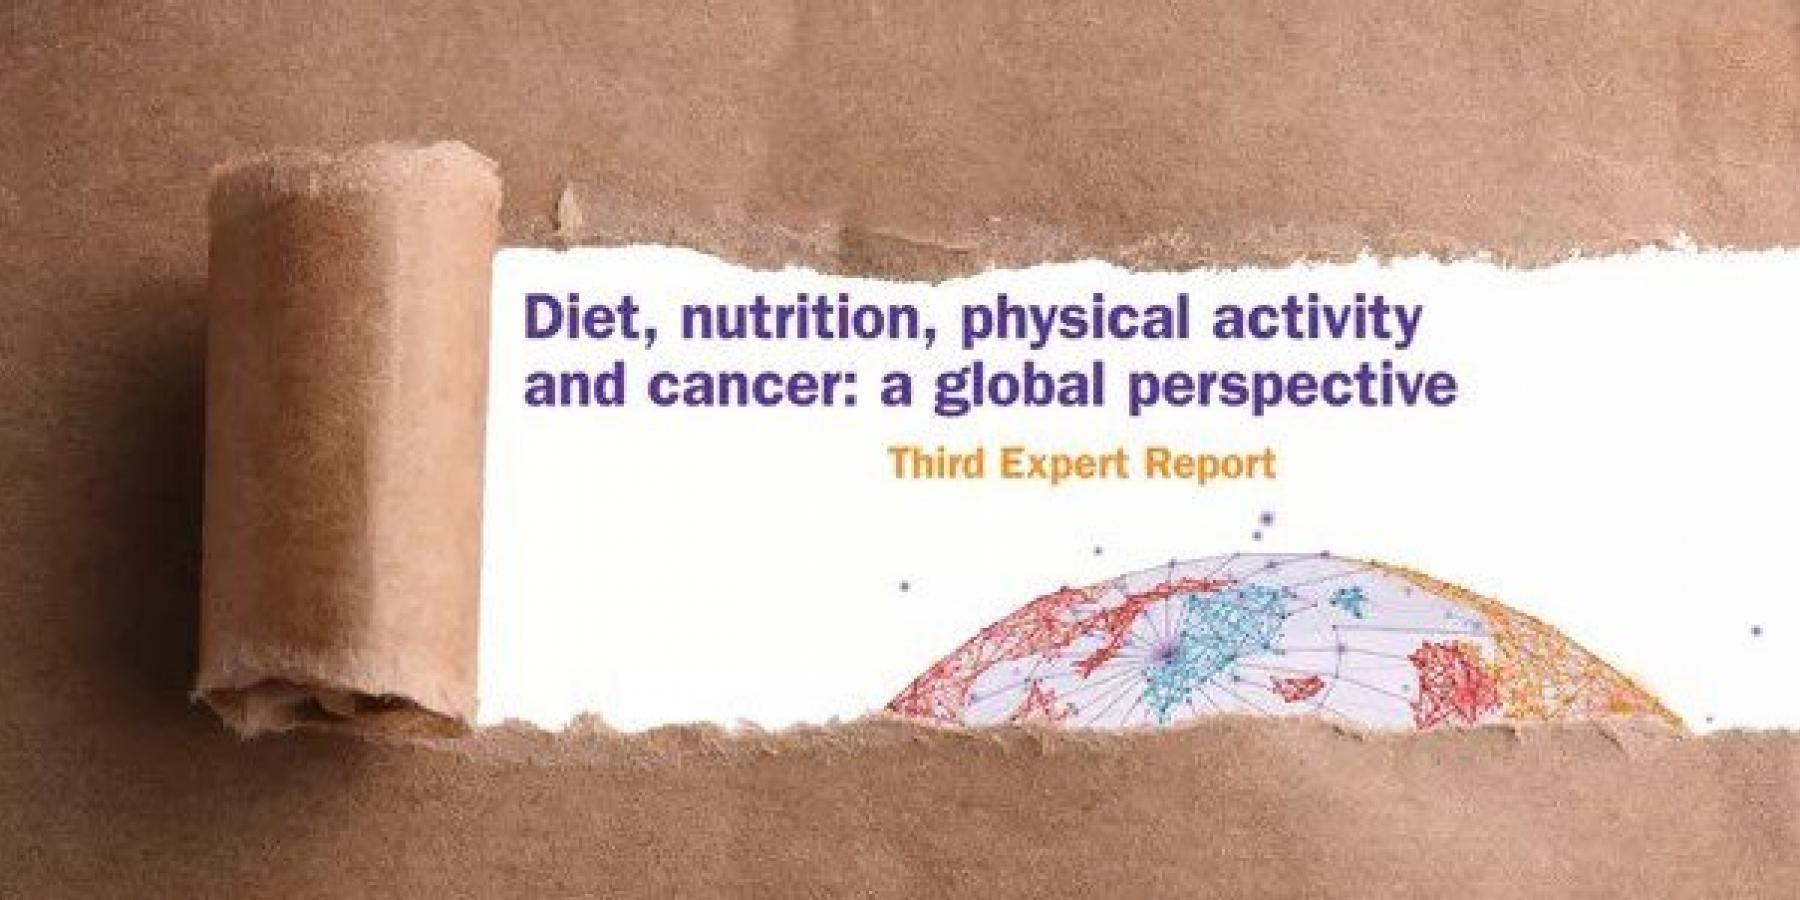 New report reinforces call for better diet and more physical